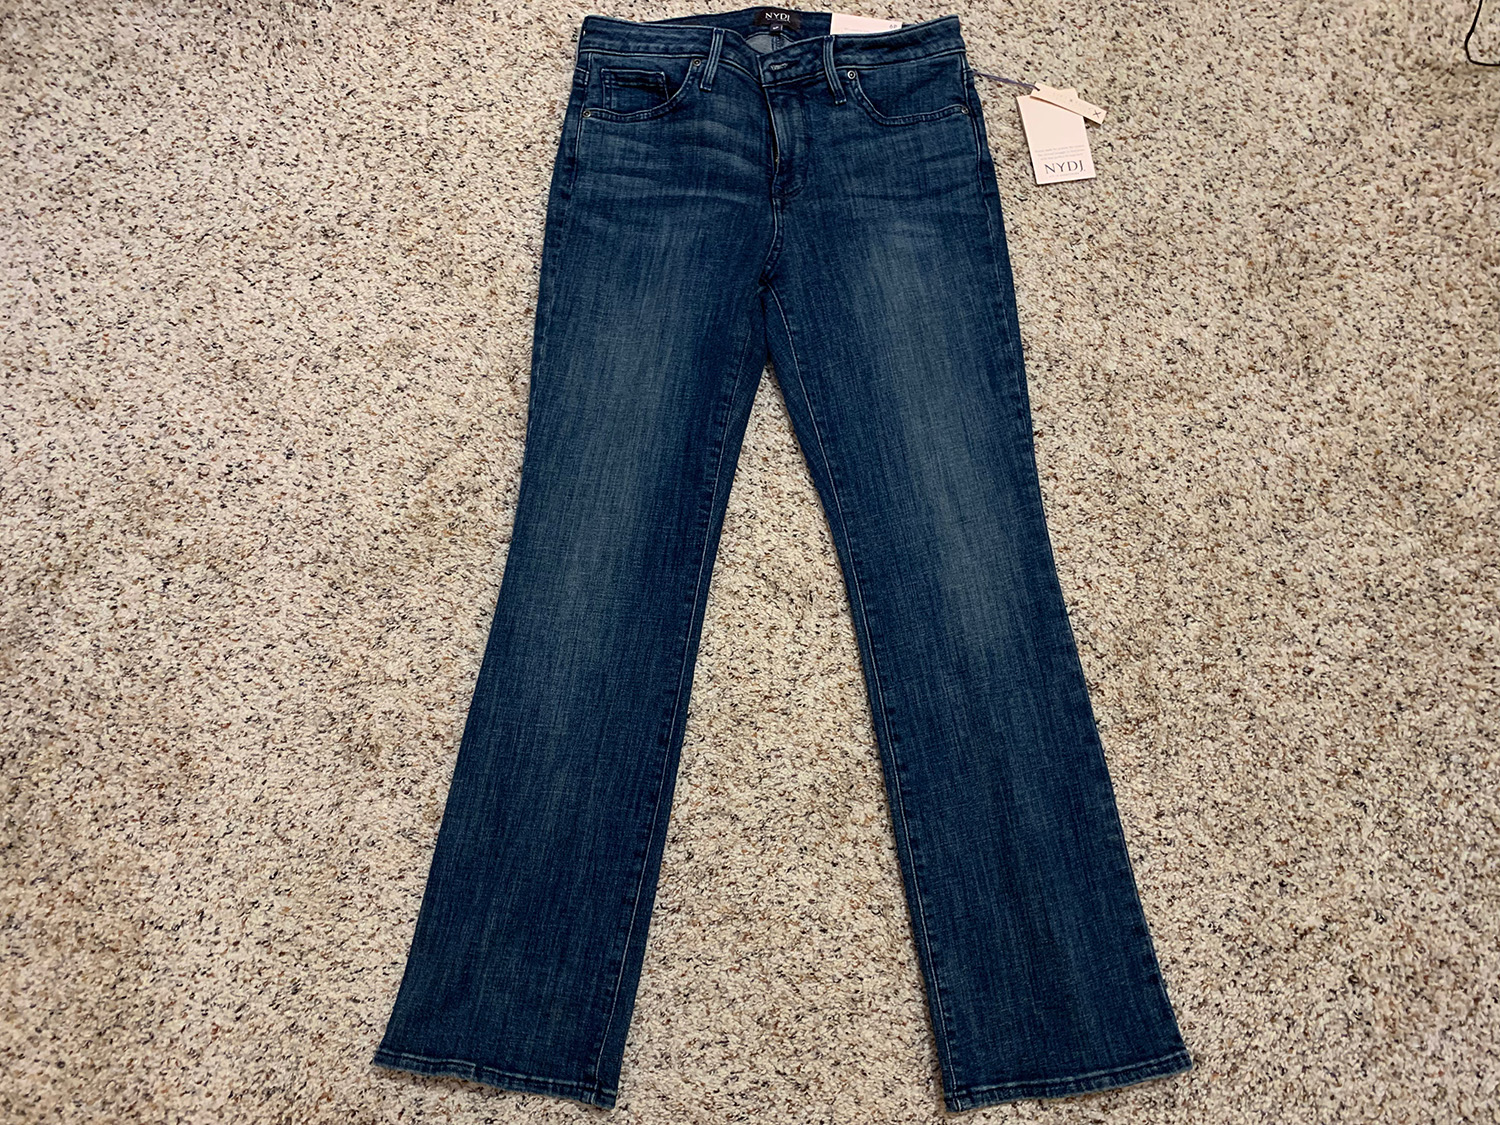 NYDJ Not Your Daughters Jeans Womens Barbara Bootcut Jeans Sz 6P